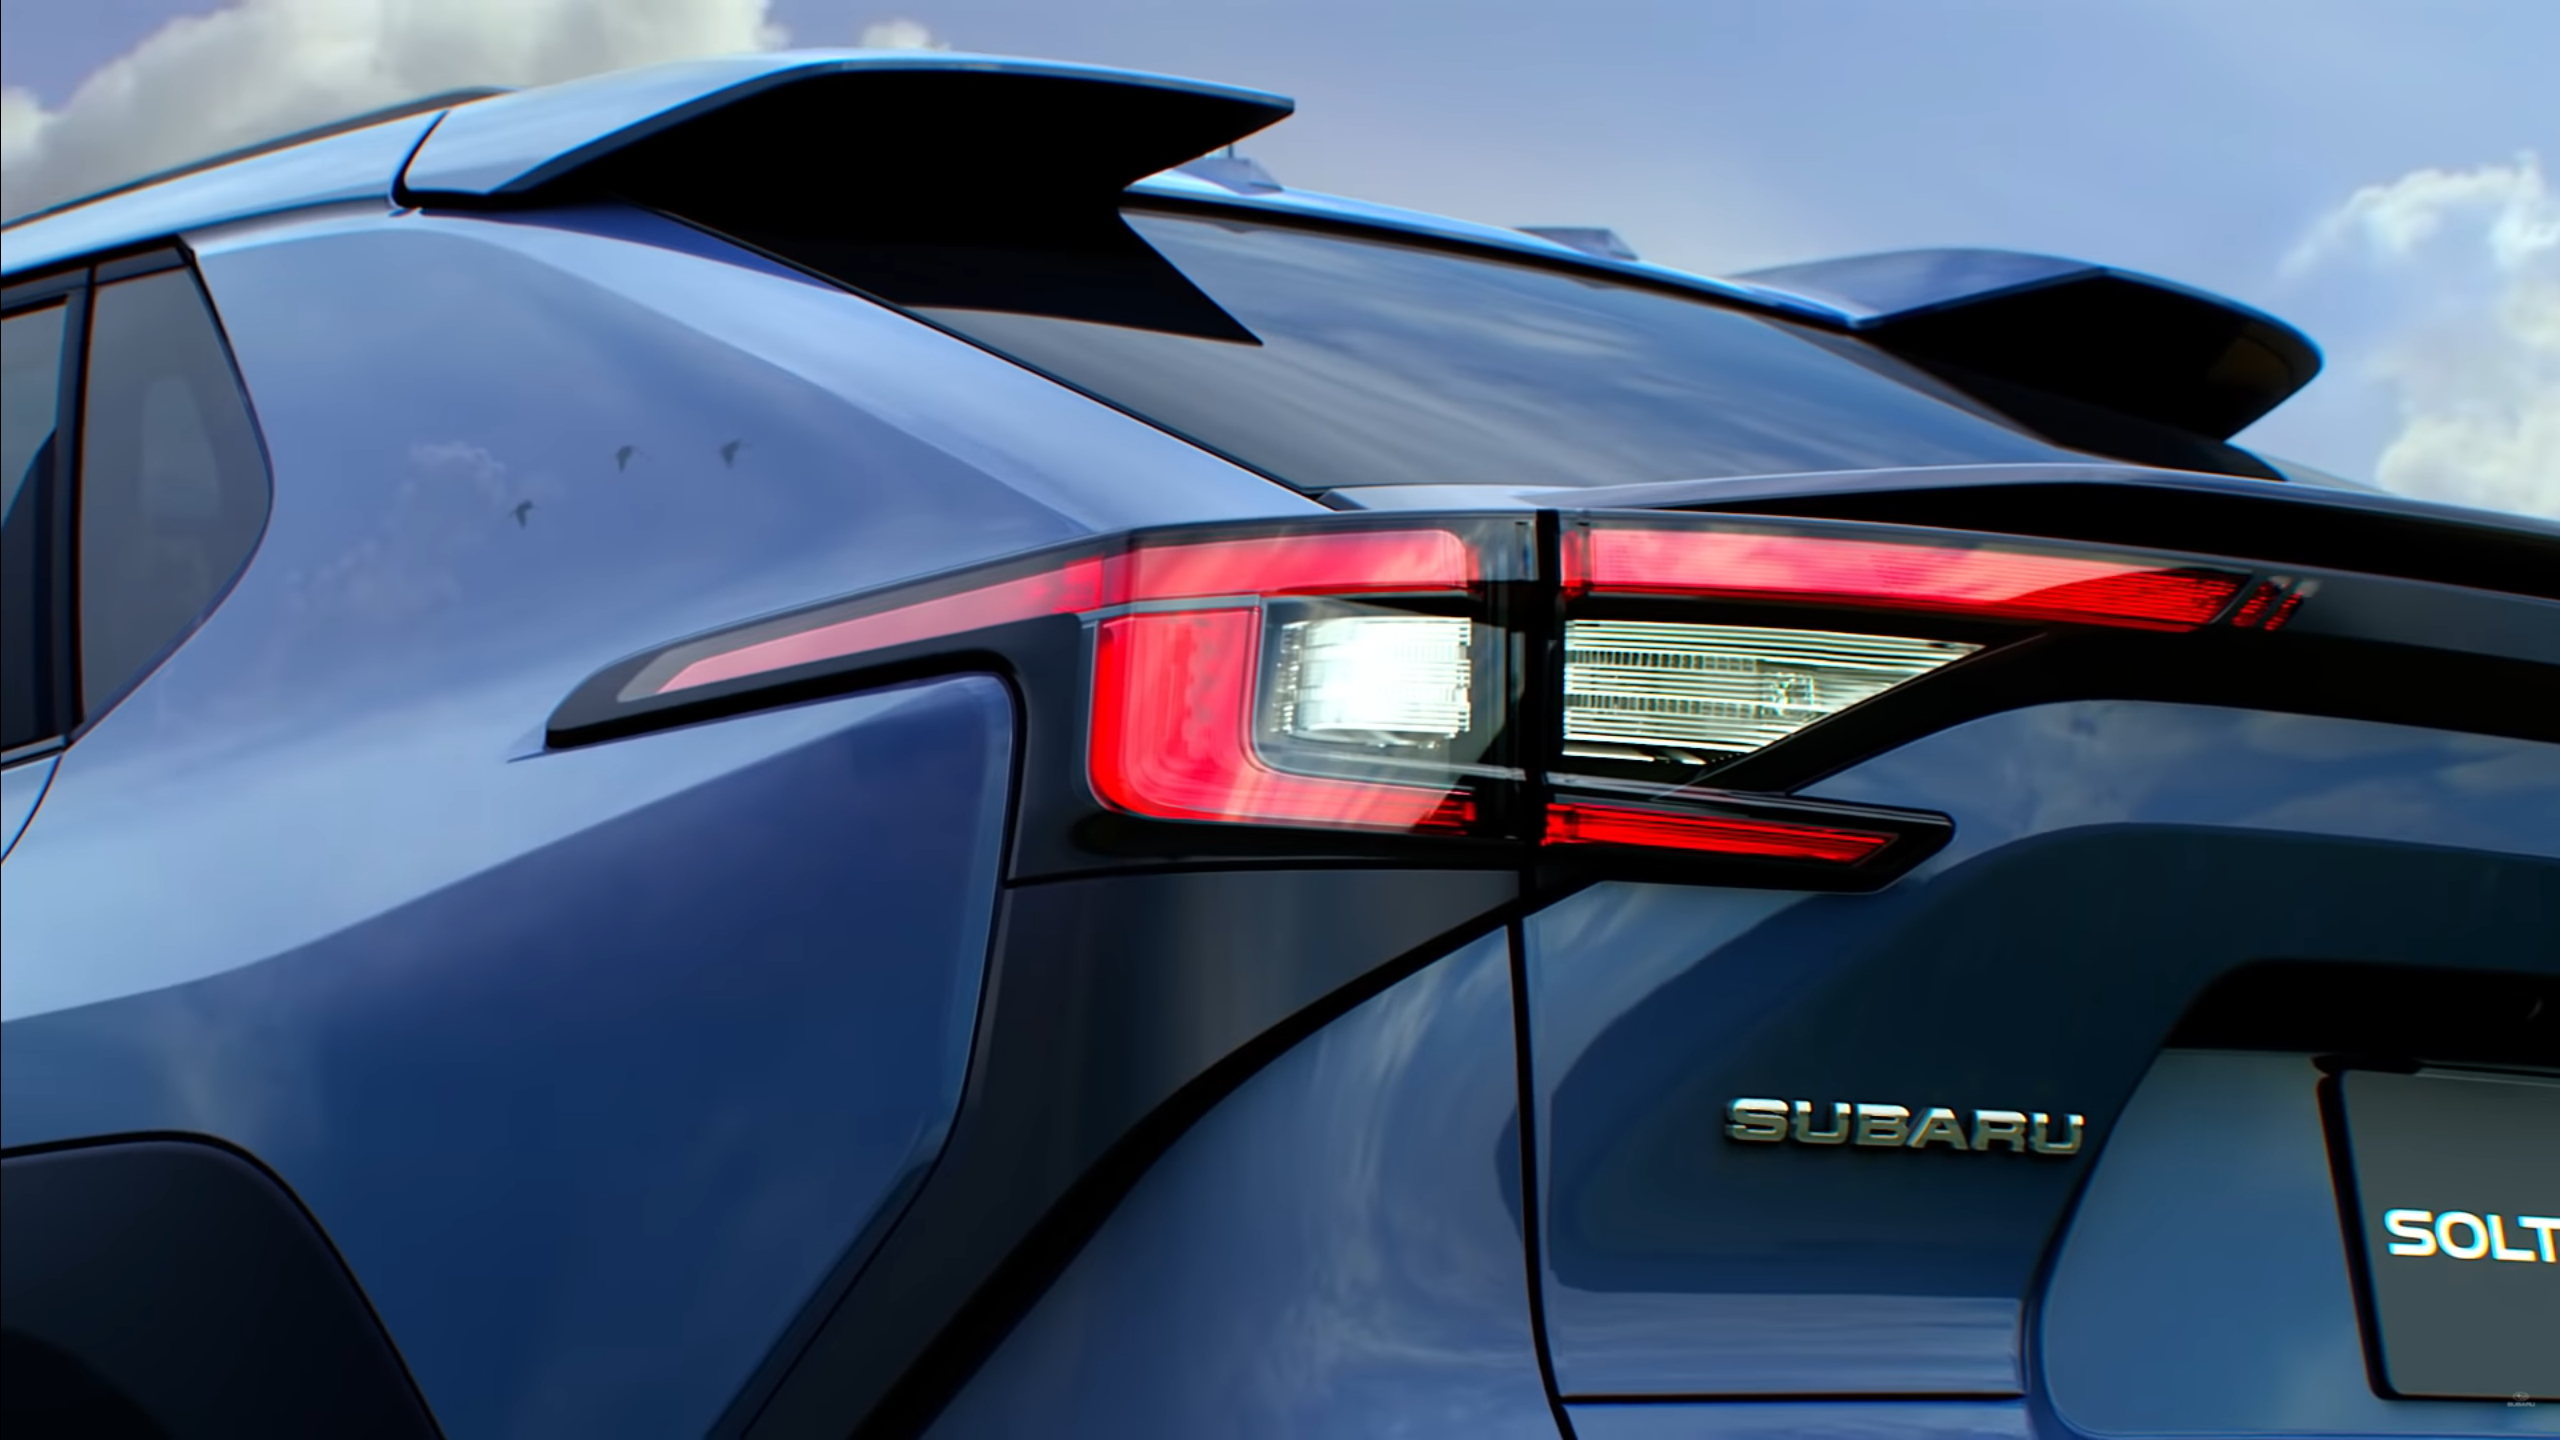 Subaru shows the first teaser video of its Solterra EV